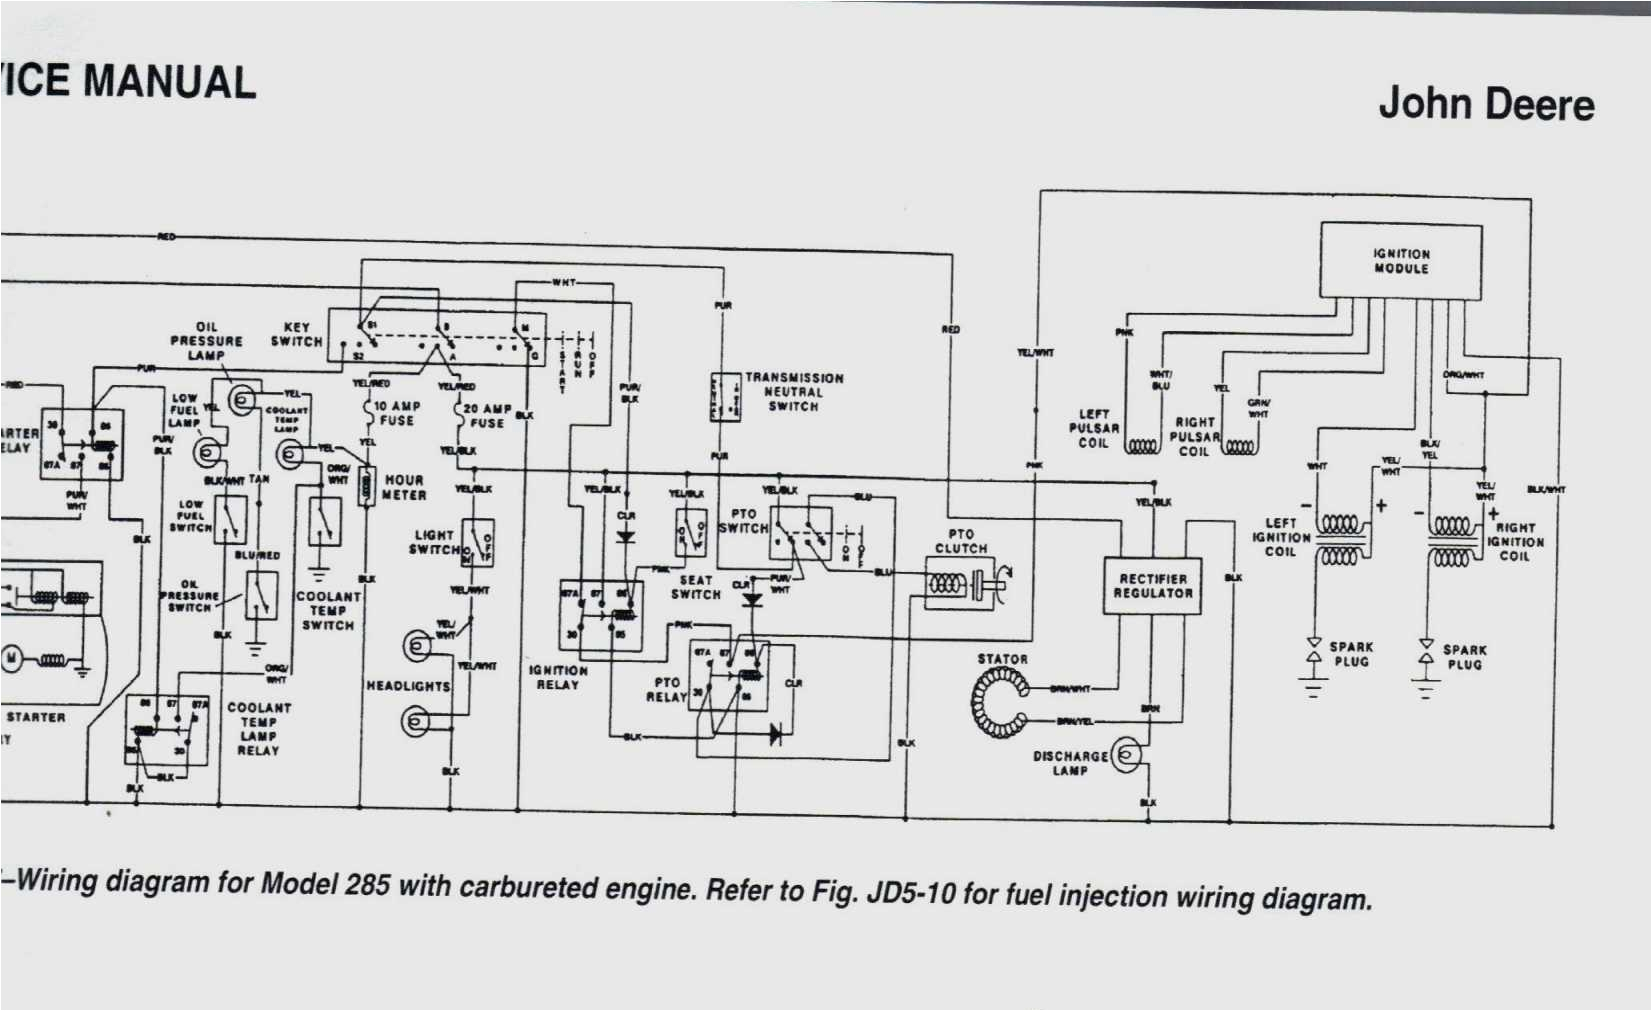 John Deere 445 Wiring Diagram John Deere 445 Wiring Diagram Wiring Diagrams